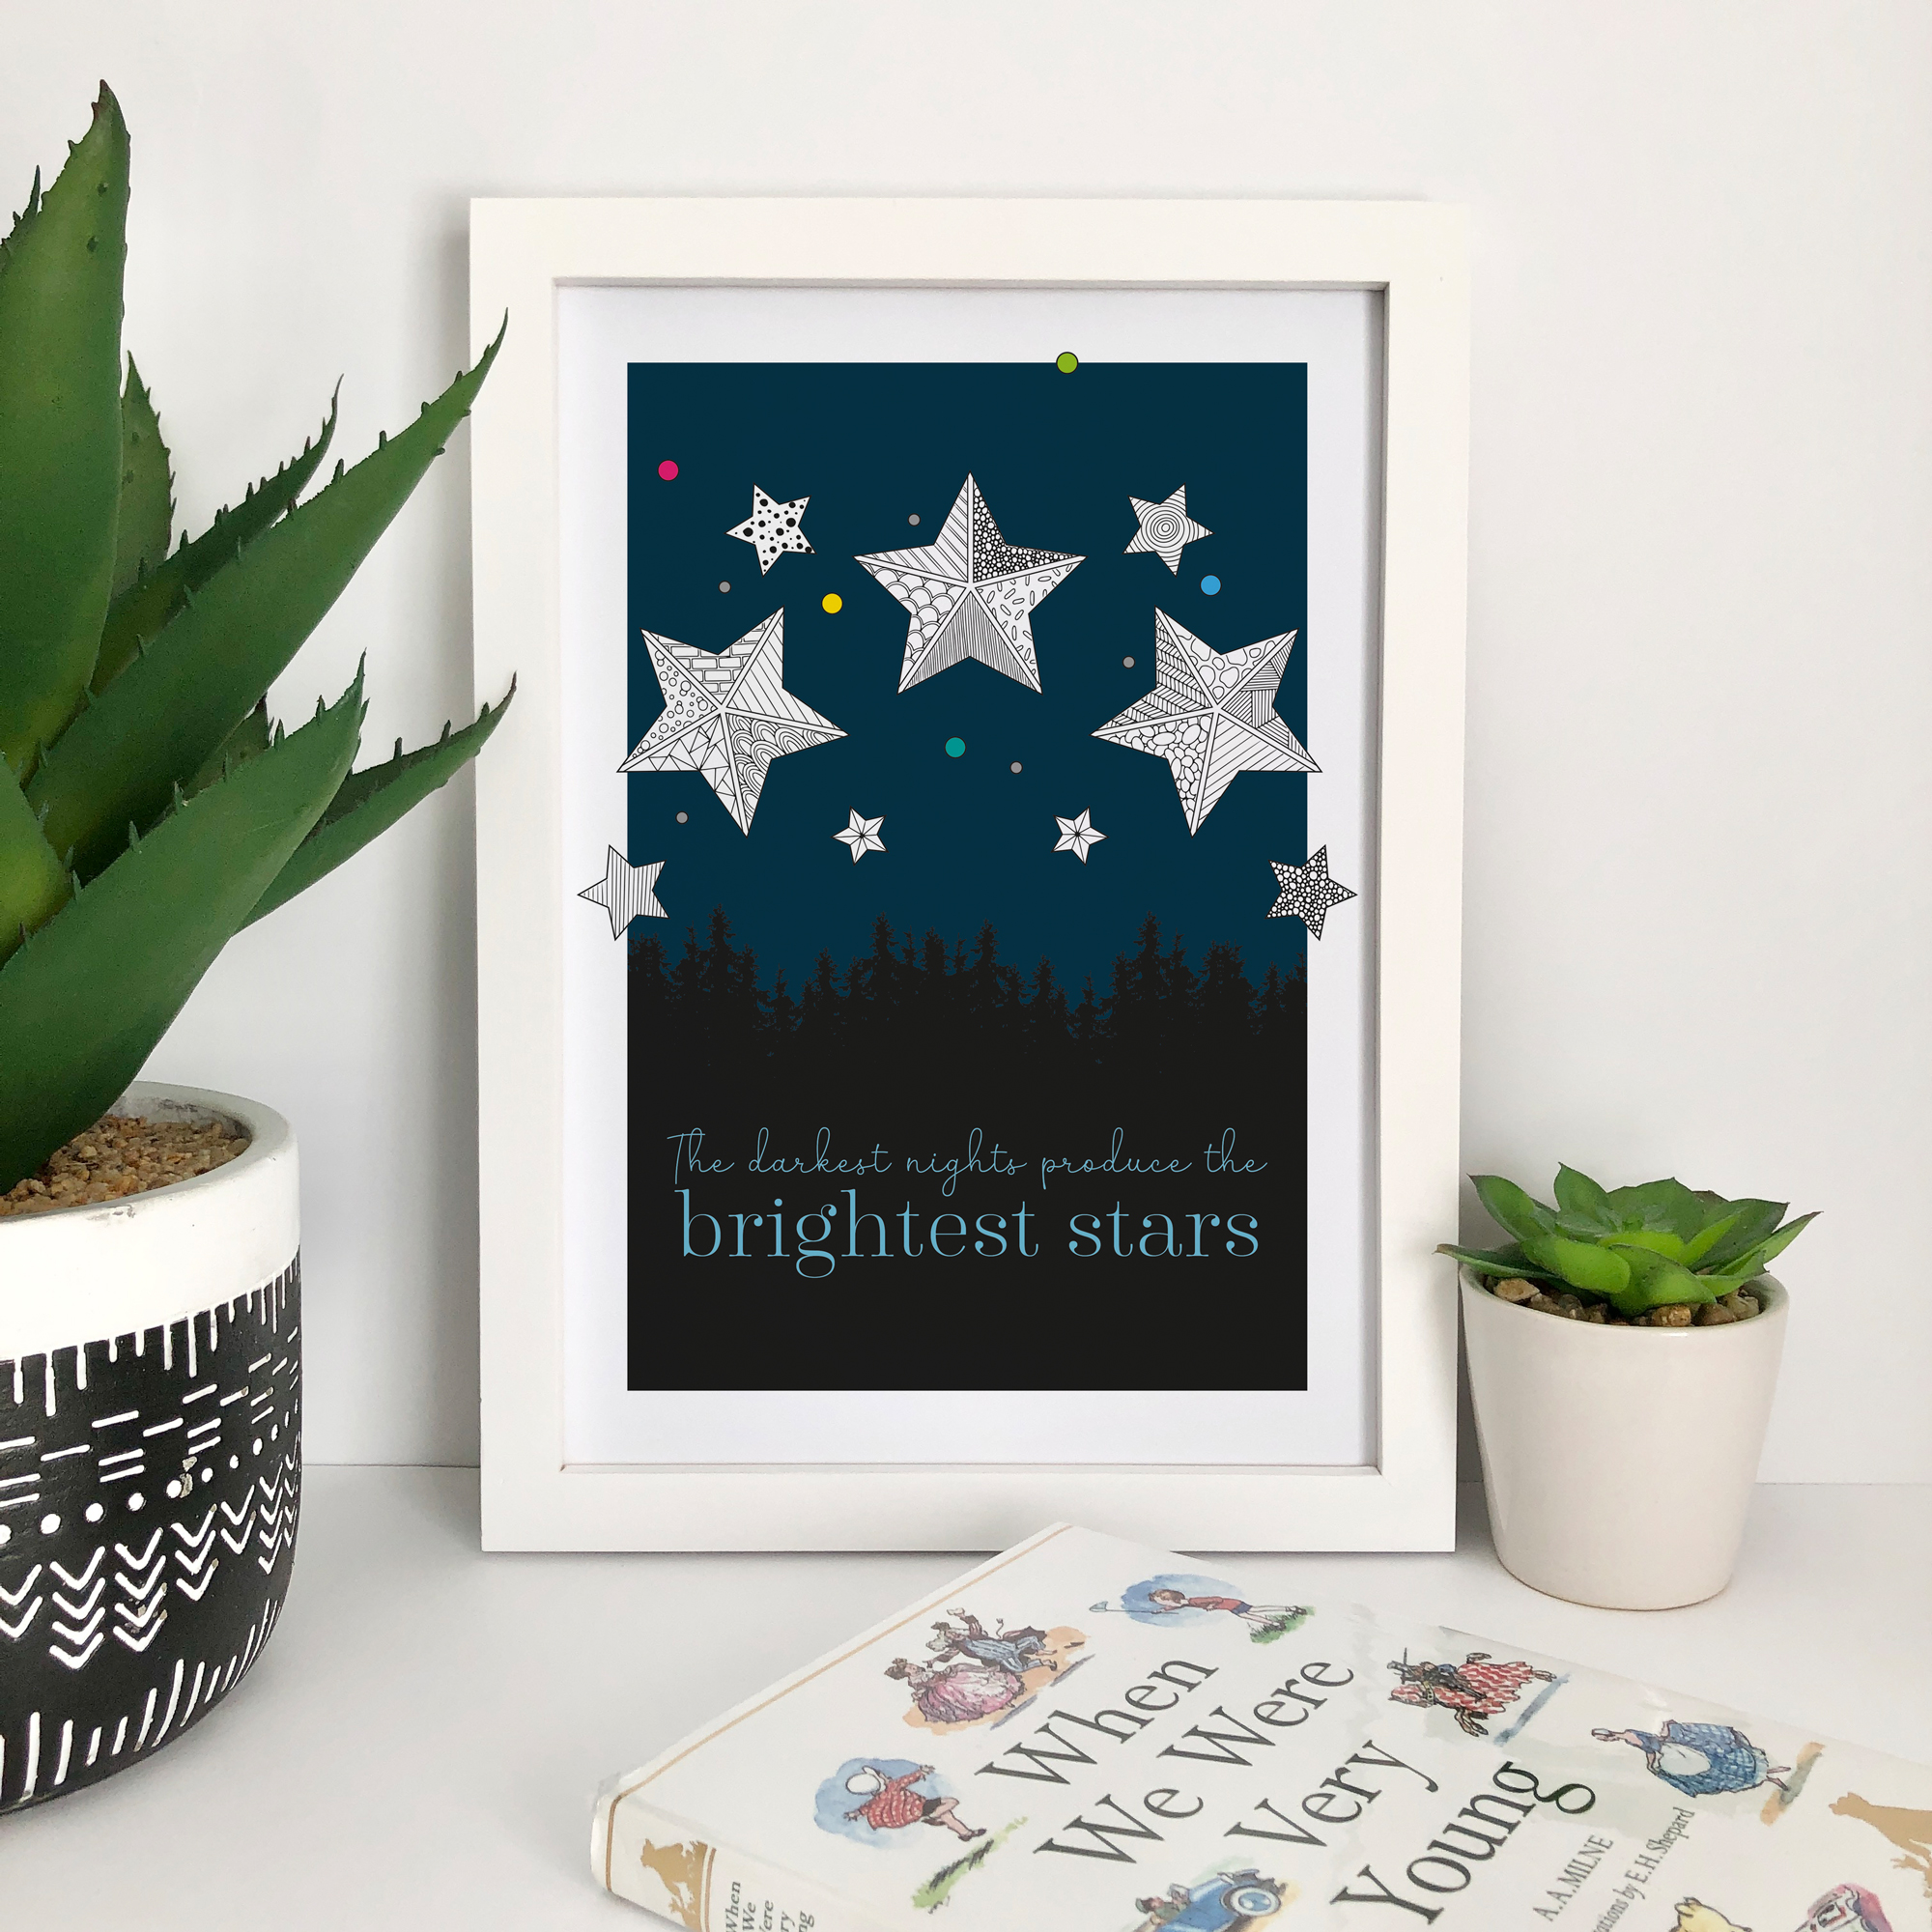 This design is available with a navy blue, grey, or rainbow background and features the phrase 'The darkest nights produce the brightest stars'.